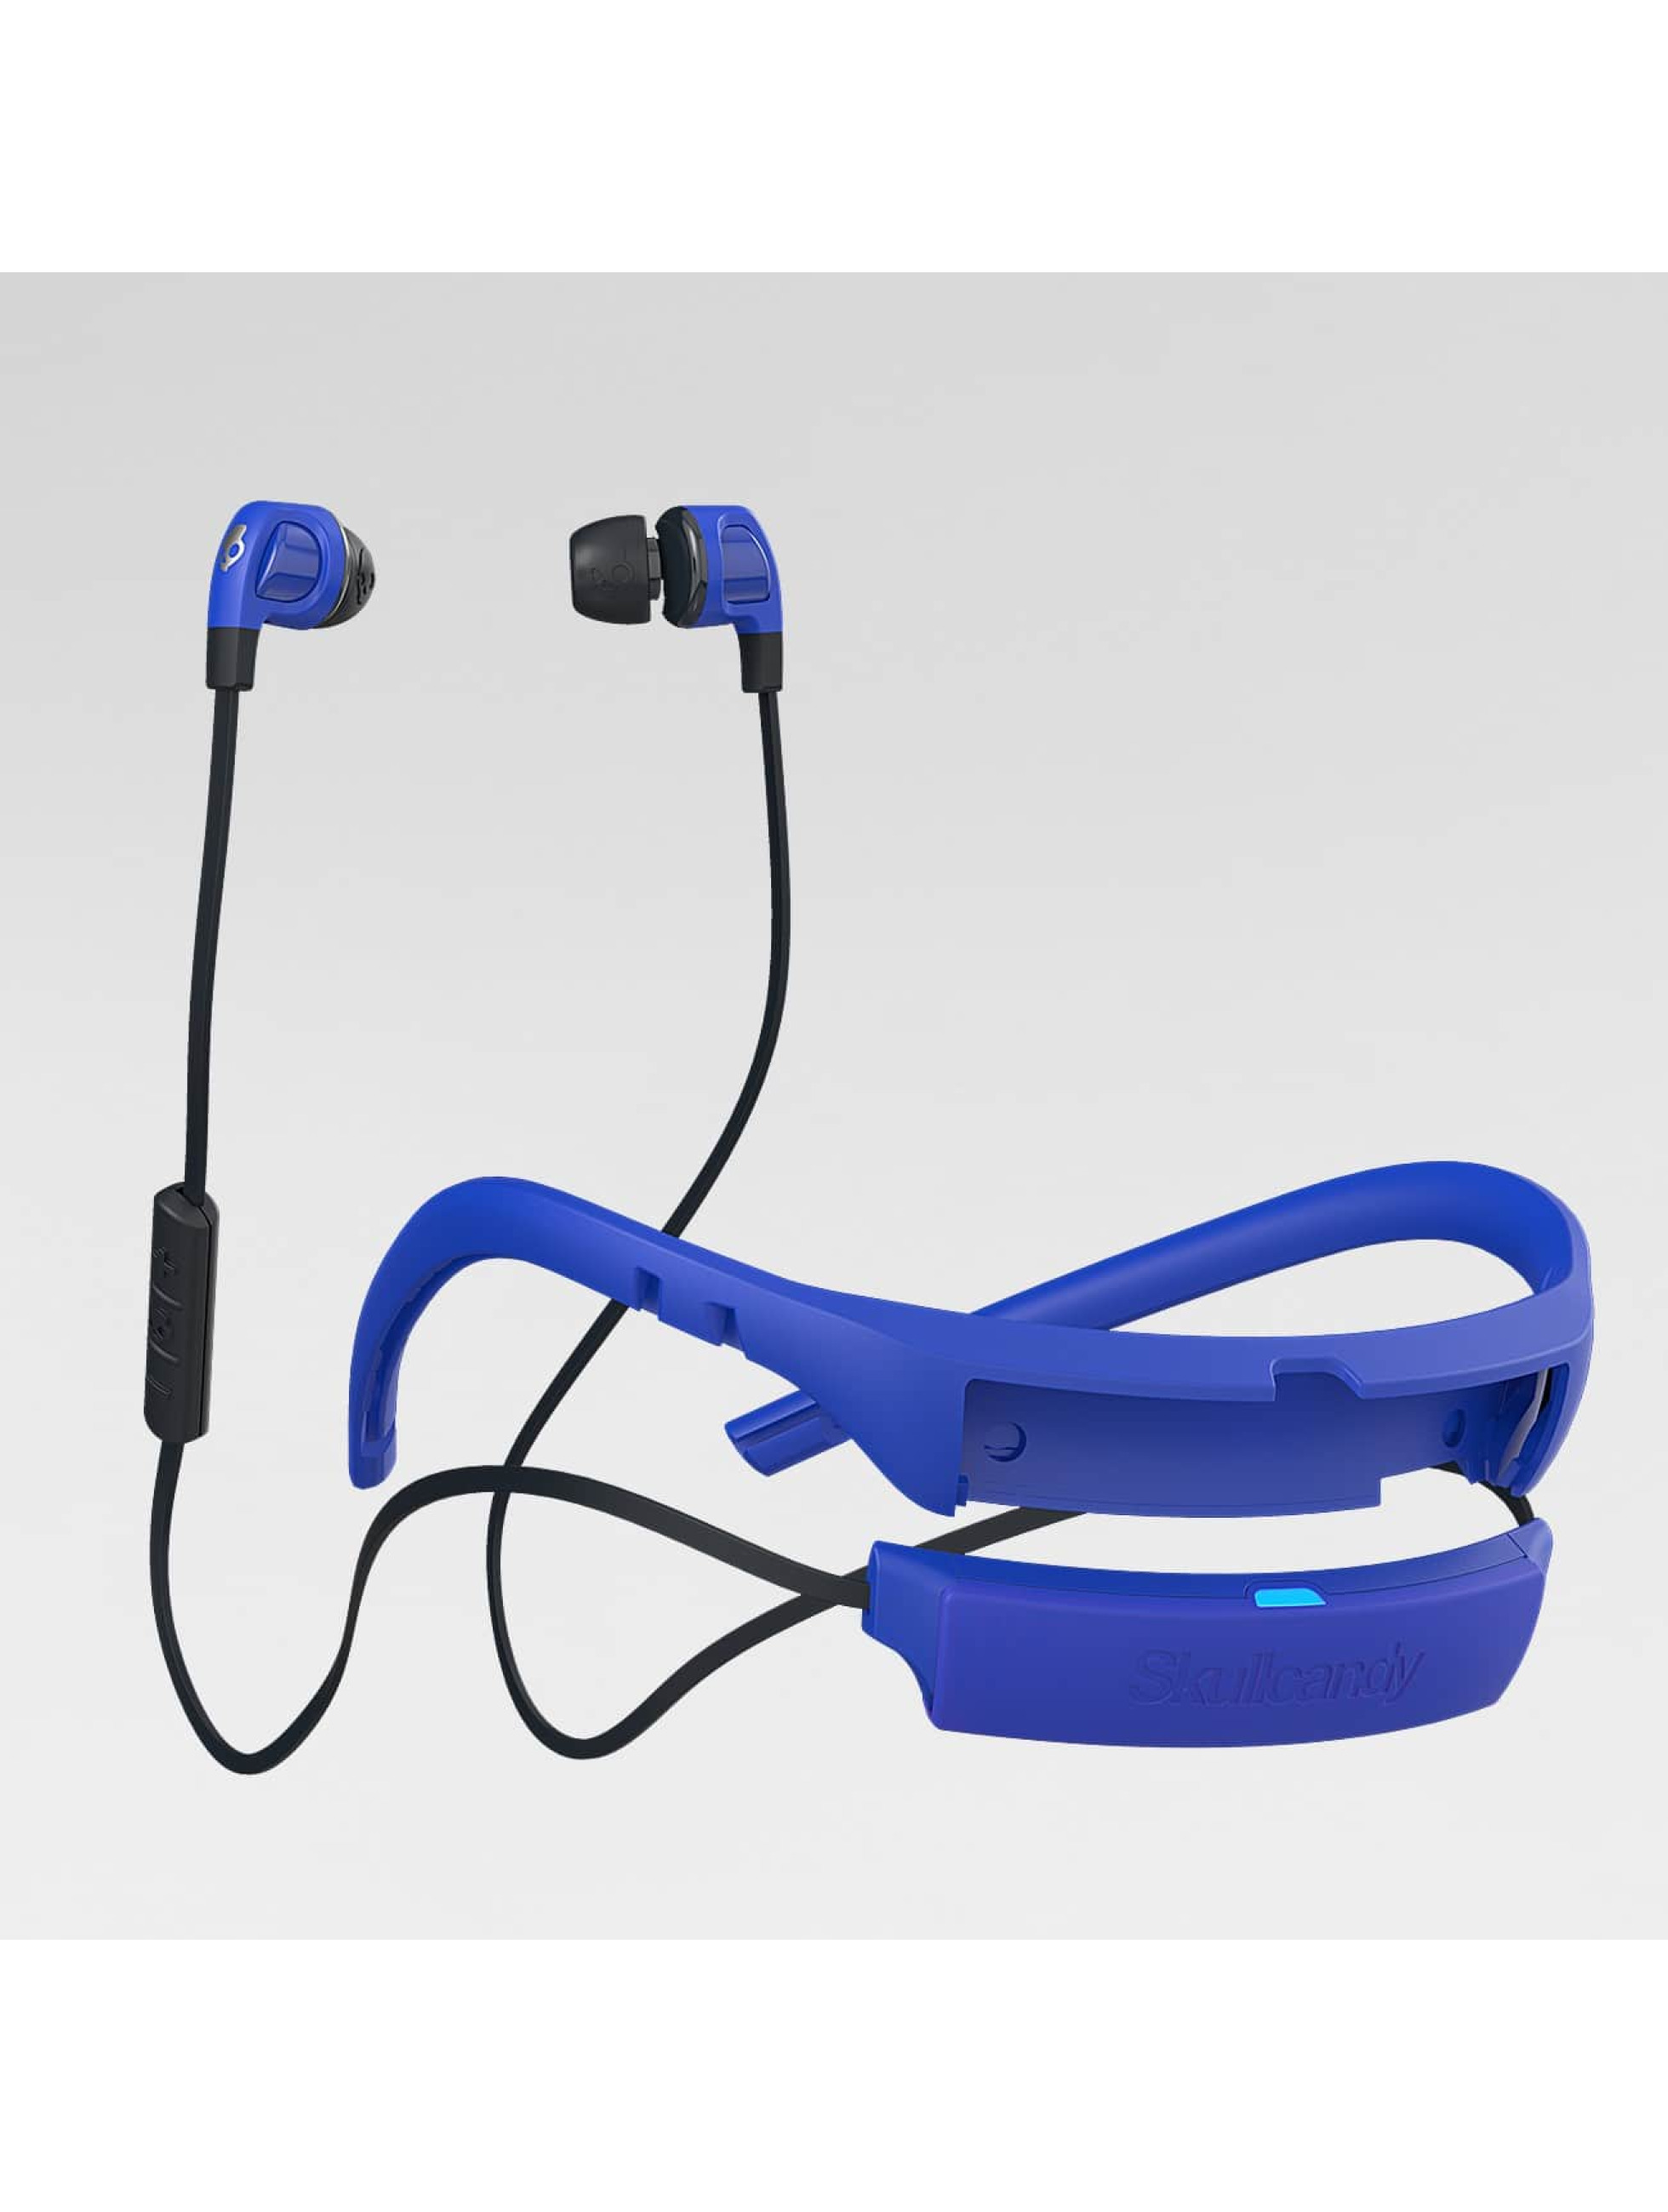 Skullcandy Наушник Smokin Bud 2 Wireless синий